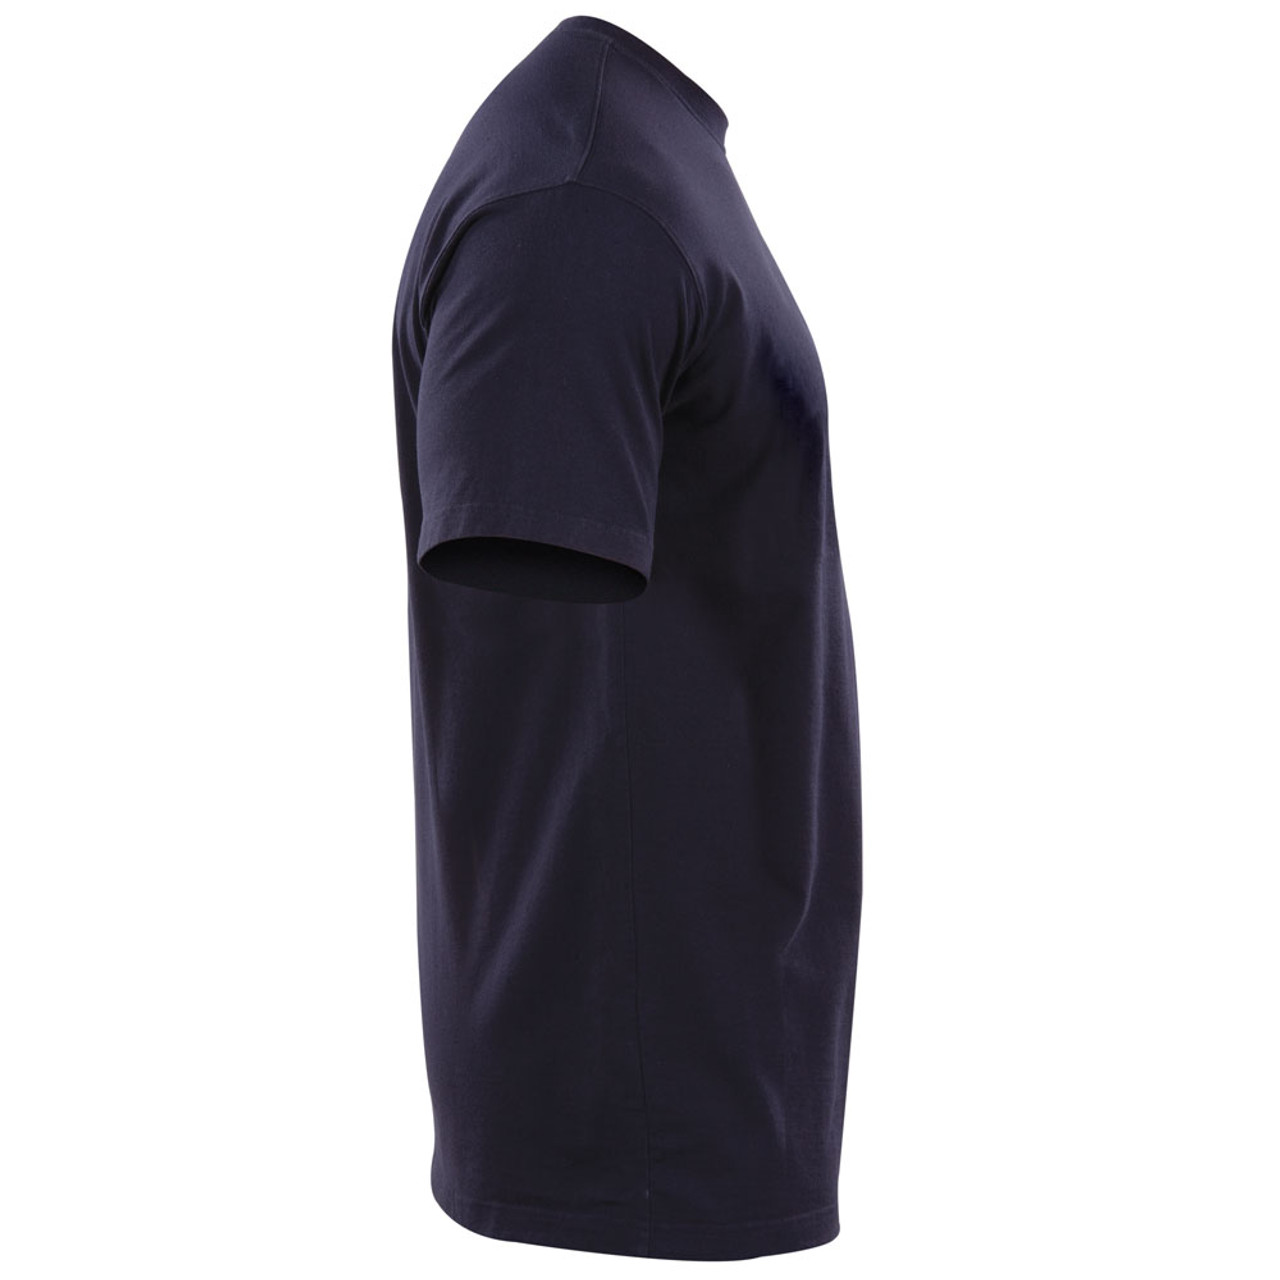 6aa91a3aa4c06a Tactical T Shirts With Pockets | Toffee Art